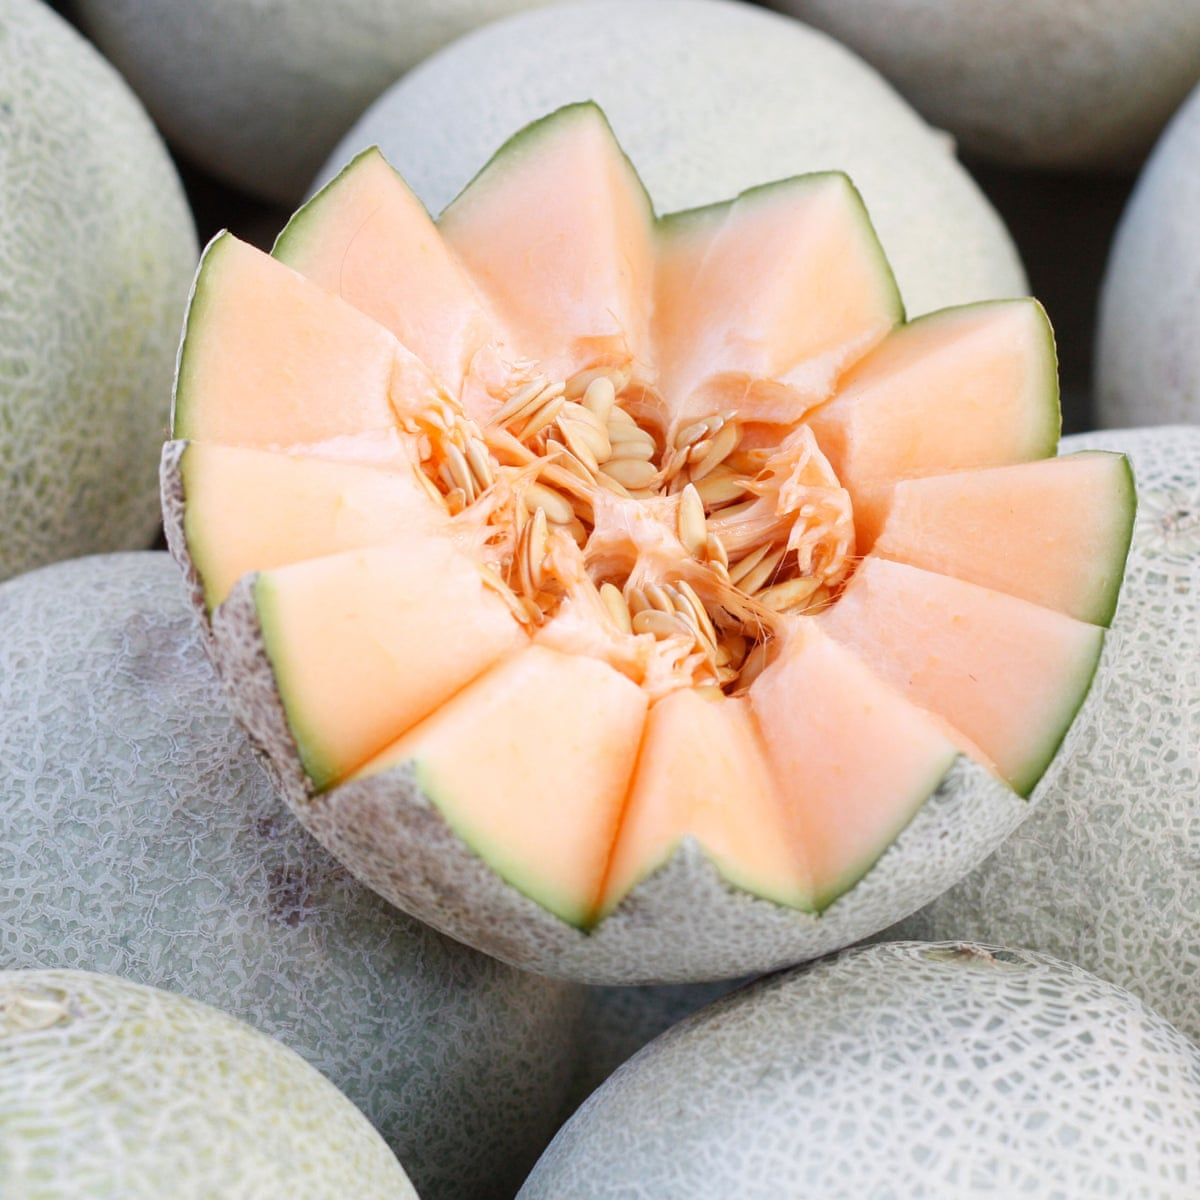 Baller Moves How To Pick A Good Melon And How To Save A Bad One Fruit The Guardian A type of melon (= large fruit with a thick skin) that is round and has yellow or green skin and…. baller moves how to pick a good melon